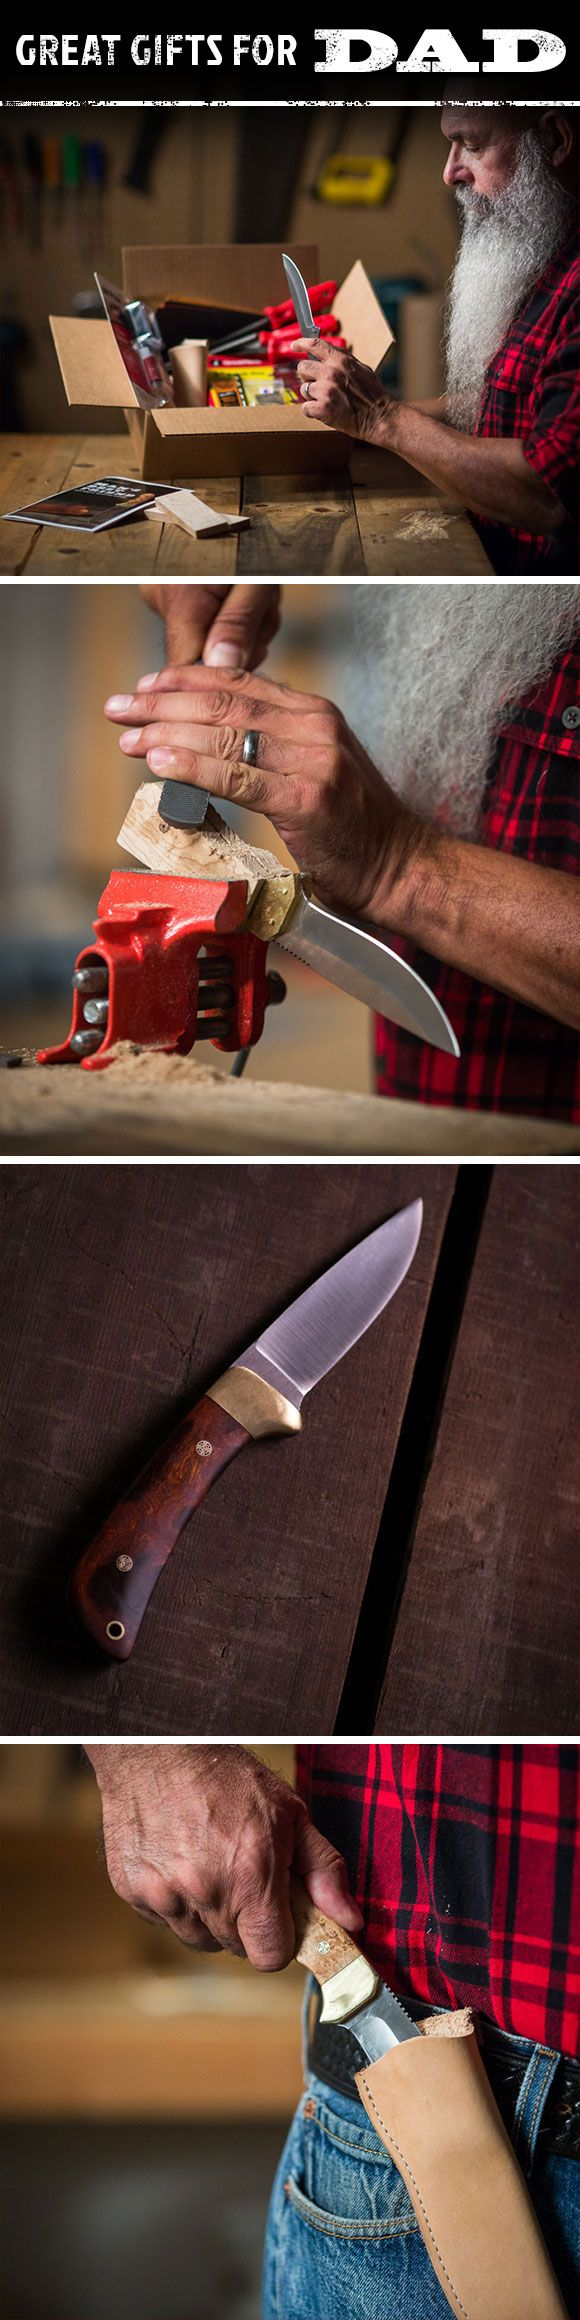 Unlike men and Socialist paychecks, not all knives are created equal. We've found that the knives guys trust most are the ones they make themselves. The Knife-Making Project Kit gives every guy the opportunity to design, craft, and perfect his new best friend. This is sure to be one of the projects your dad will most remember this Father's Day.